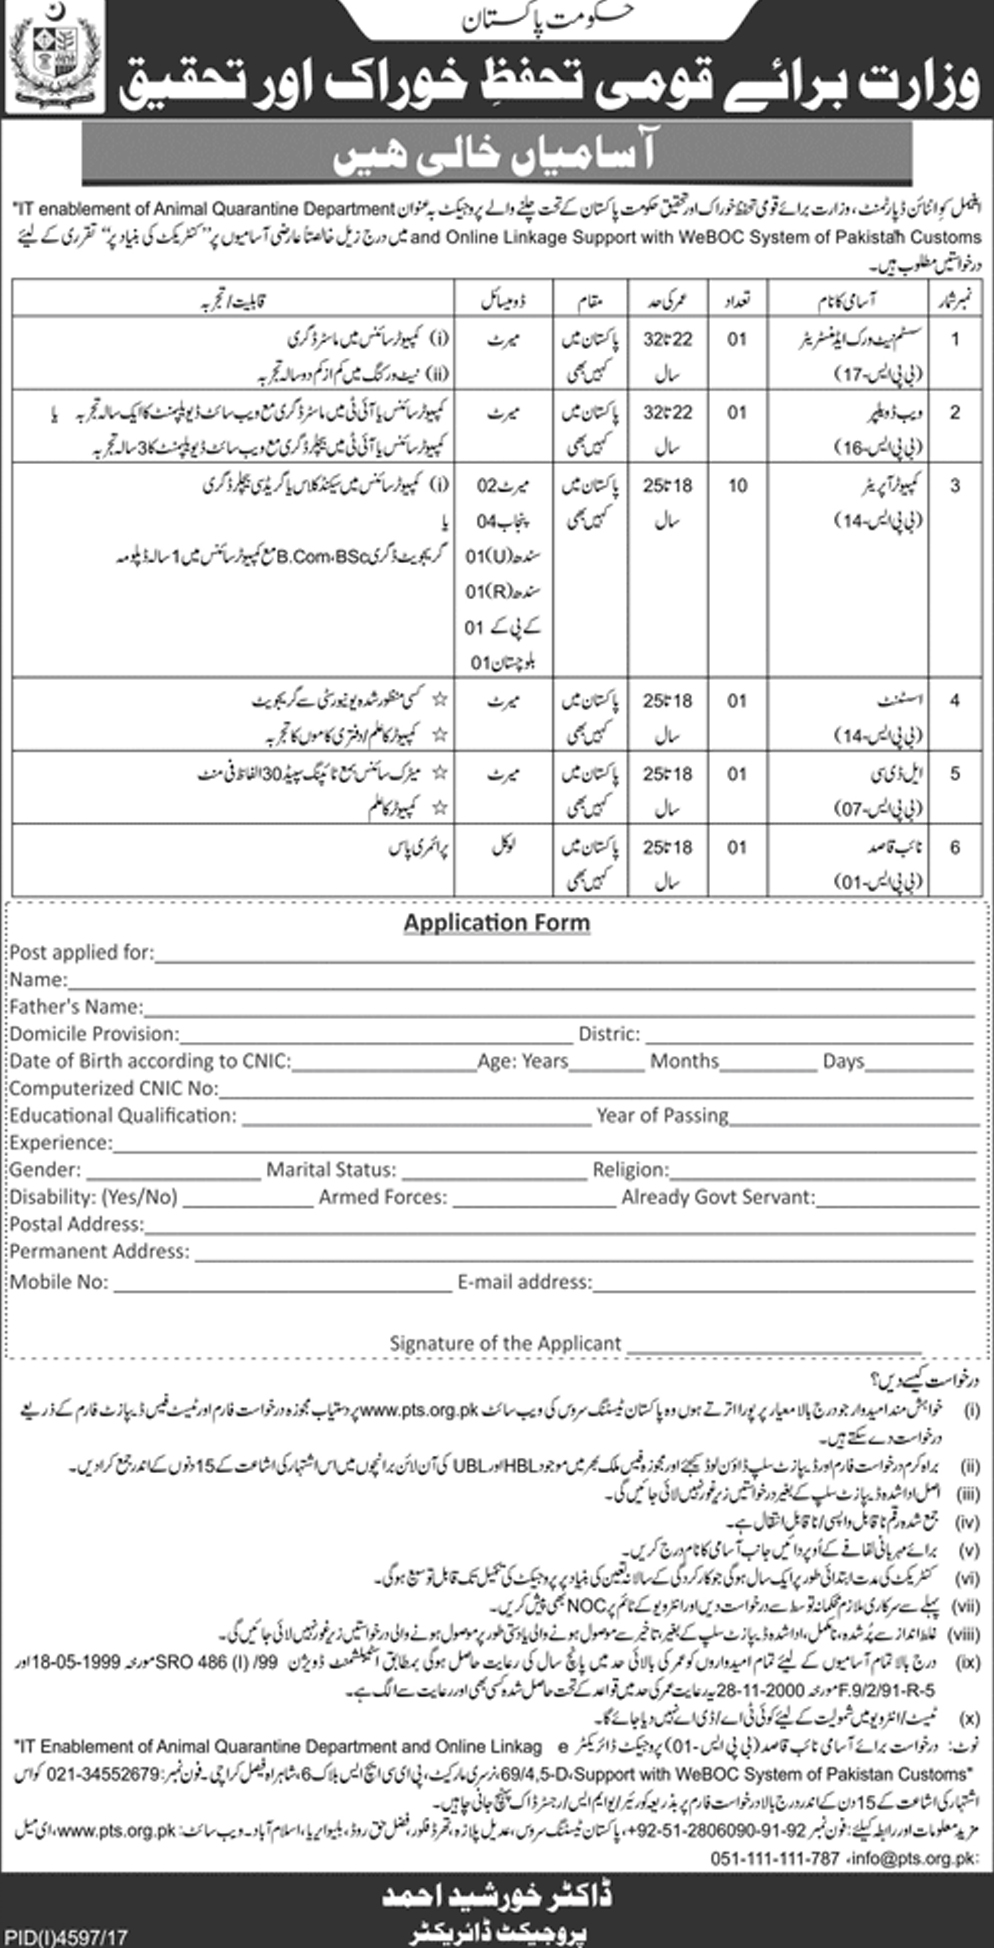 Ministry of Food and National Security Research 15 Jobs 26th February 2018 Daily Jang Newspaper